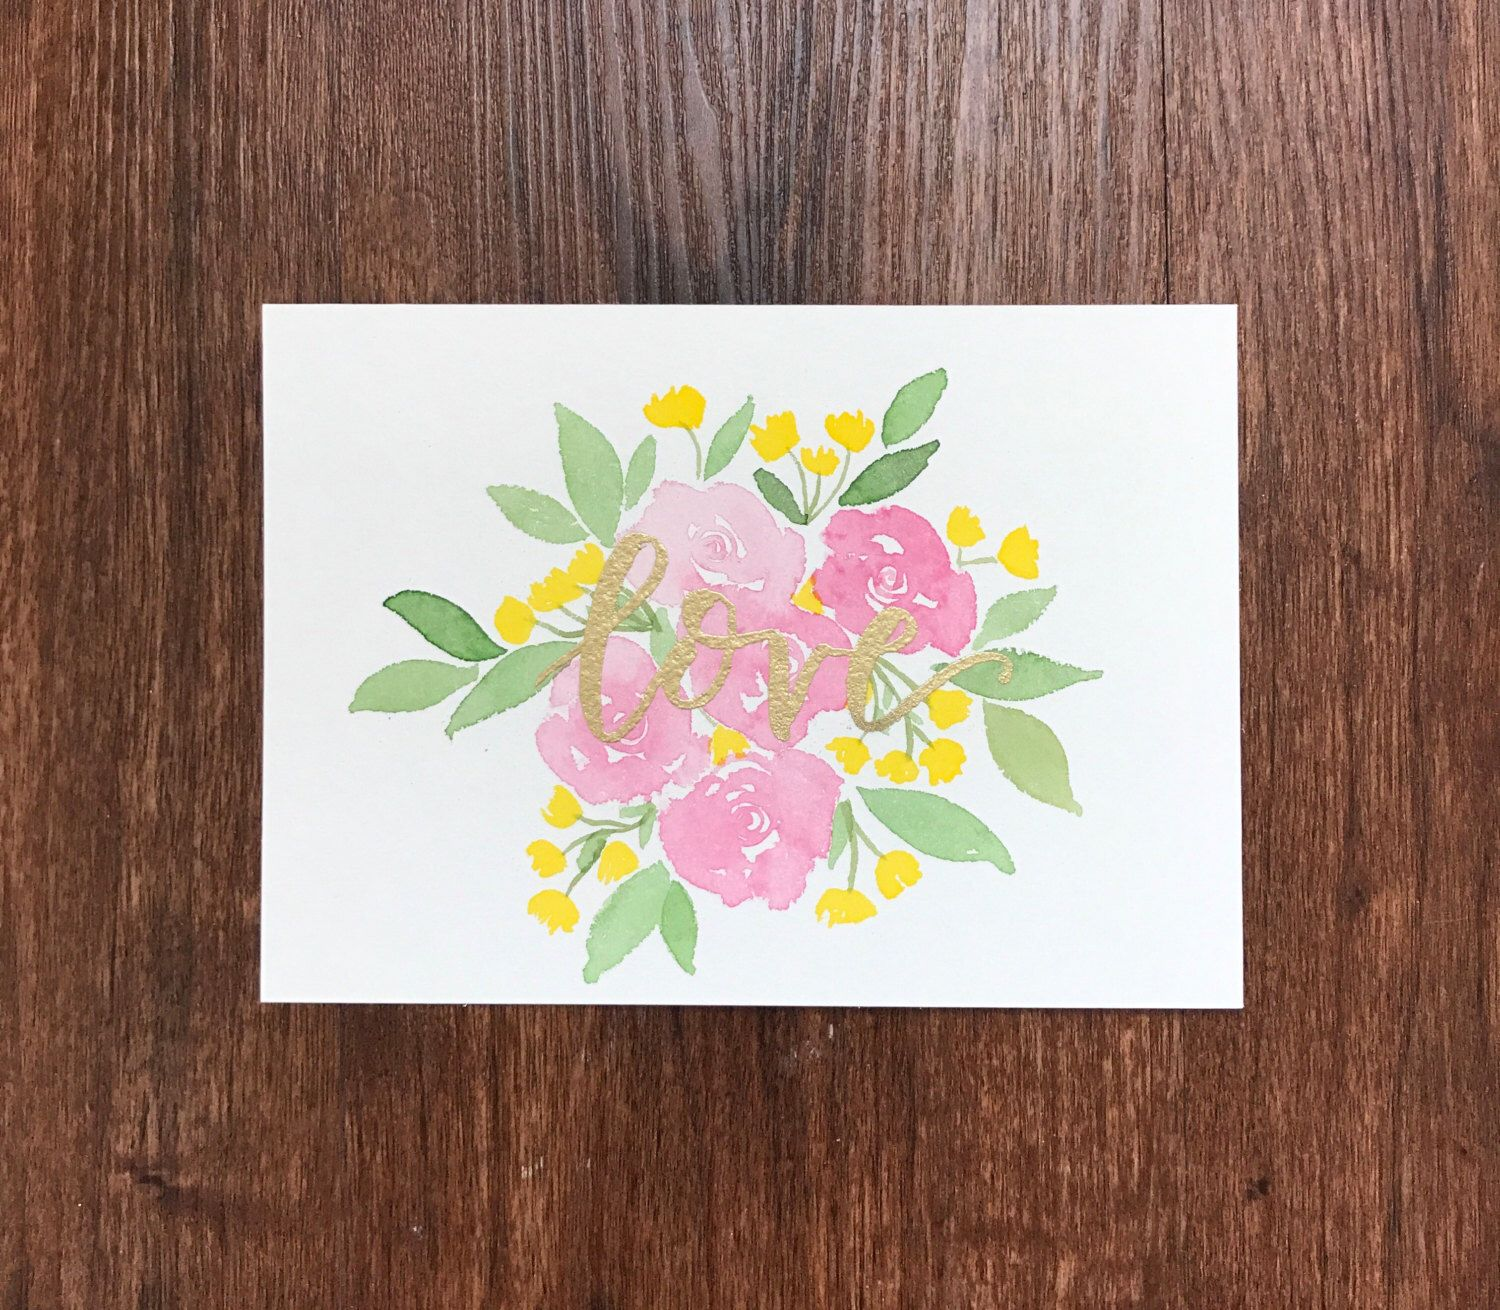 Love Floral Watercolor Art | watercolor print by CharliePeaDesigns on Etsy https://www.etsy.com/listing/475471118/love-floral-watercolor-art-watercolor